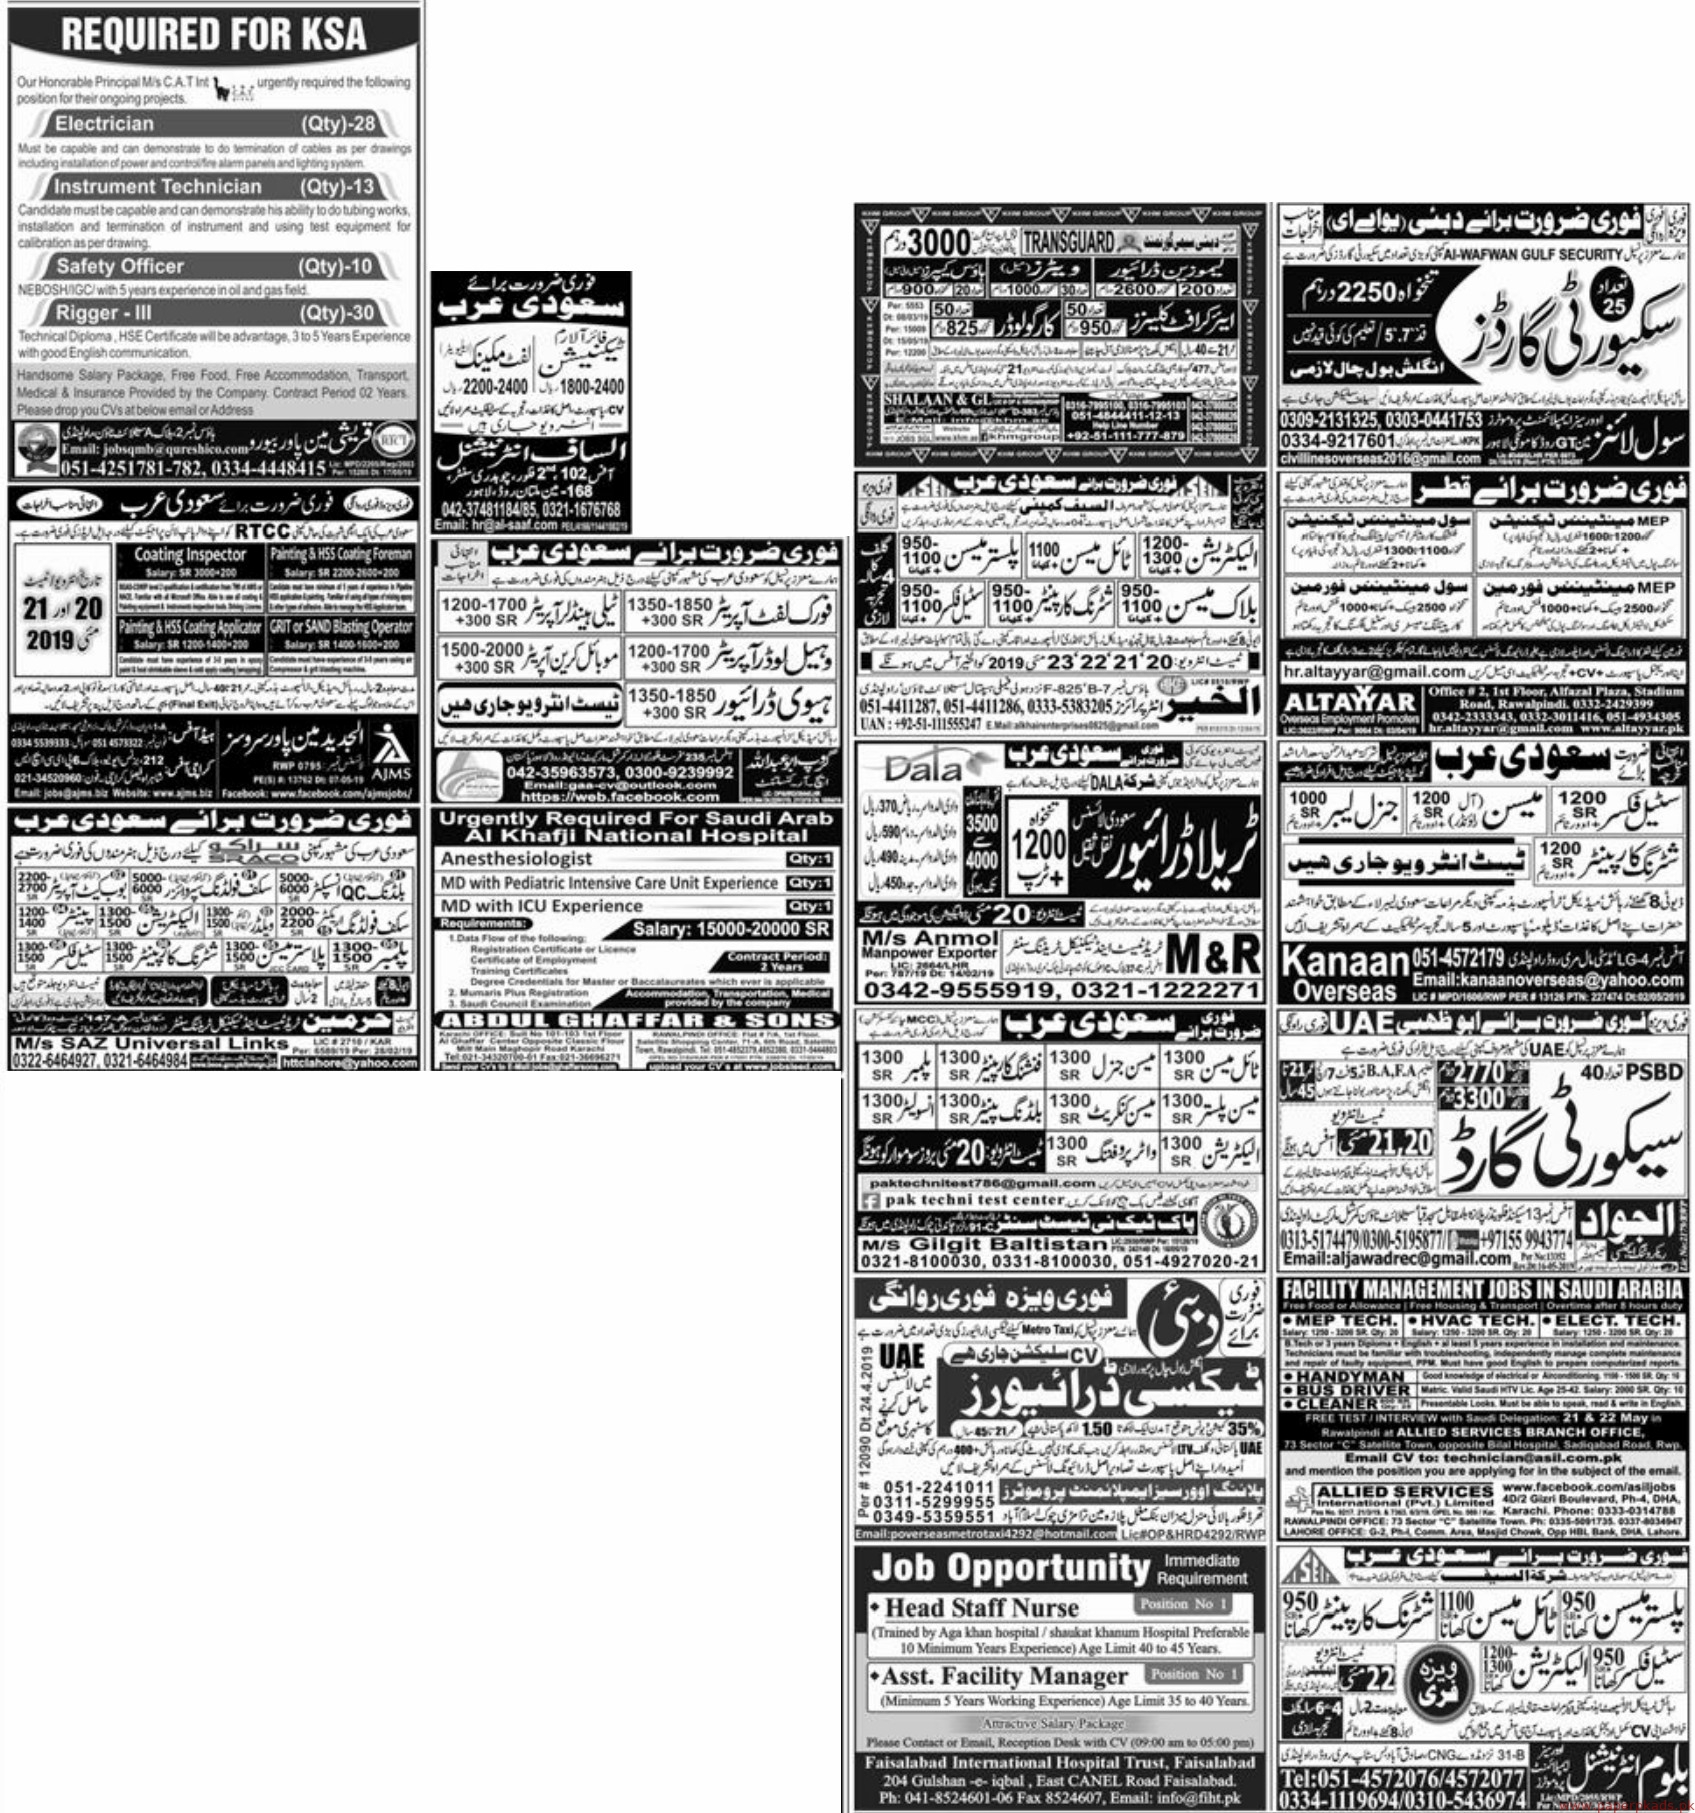 Express Newspaper Jobs 19 May 2019 Latest